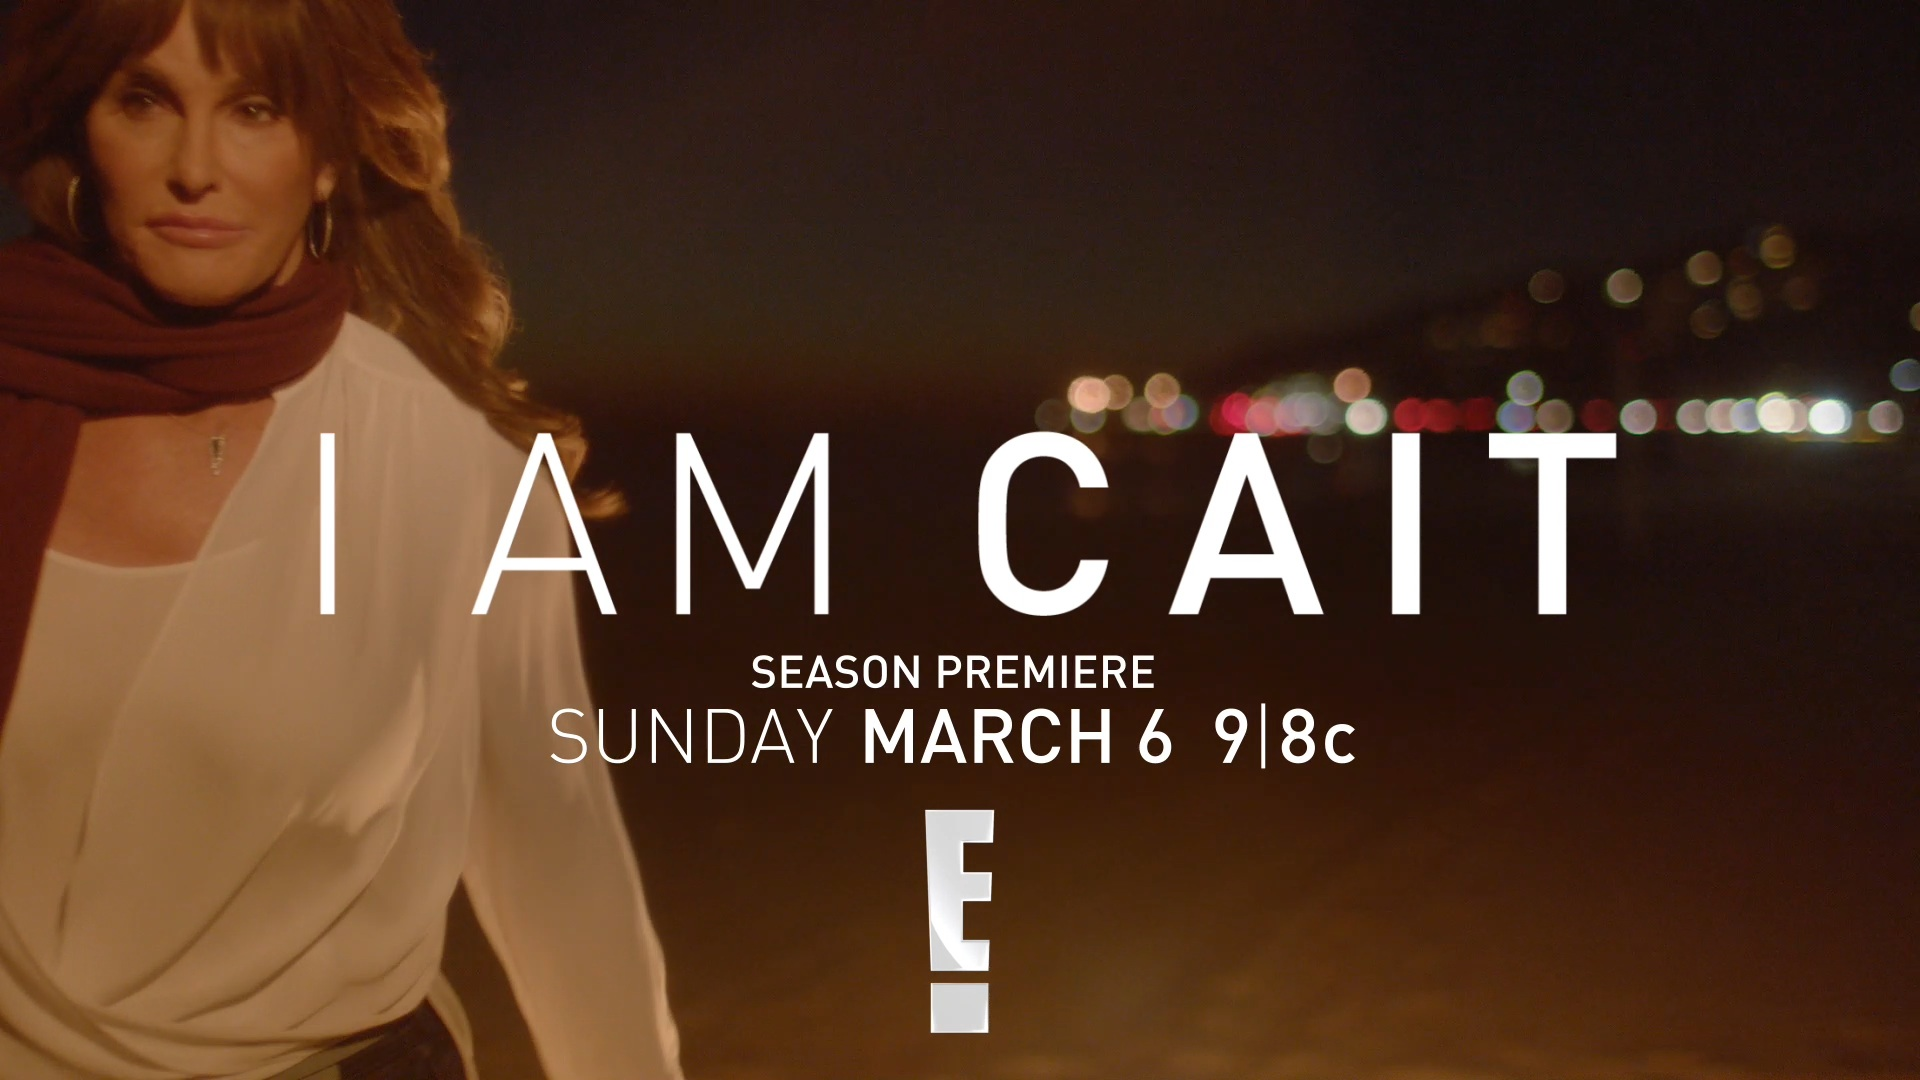 motion graphic design studio jonberrydesign | I am Cait promo graphics